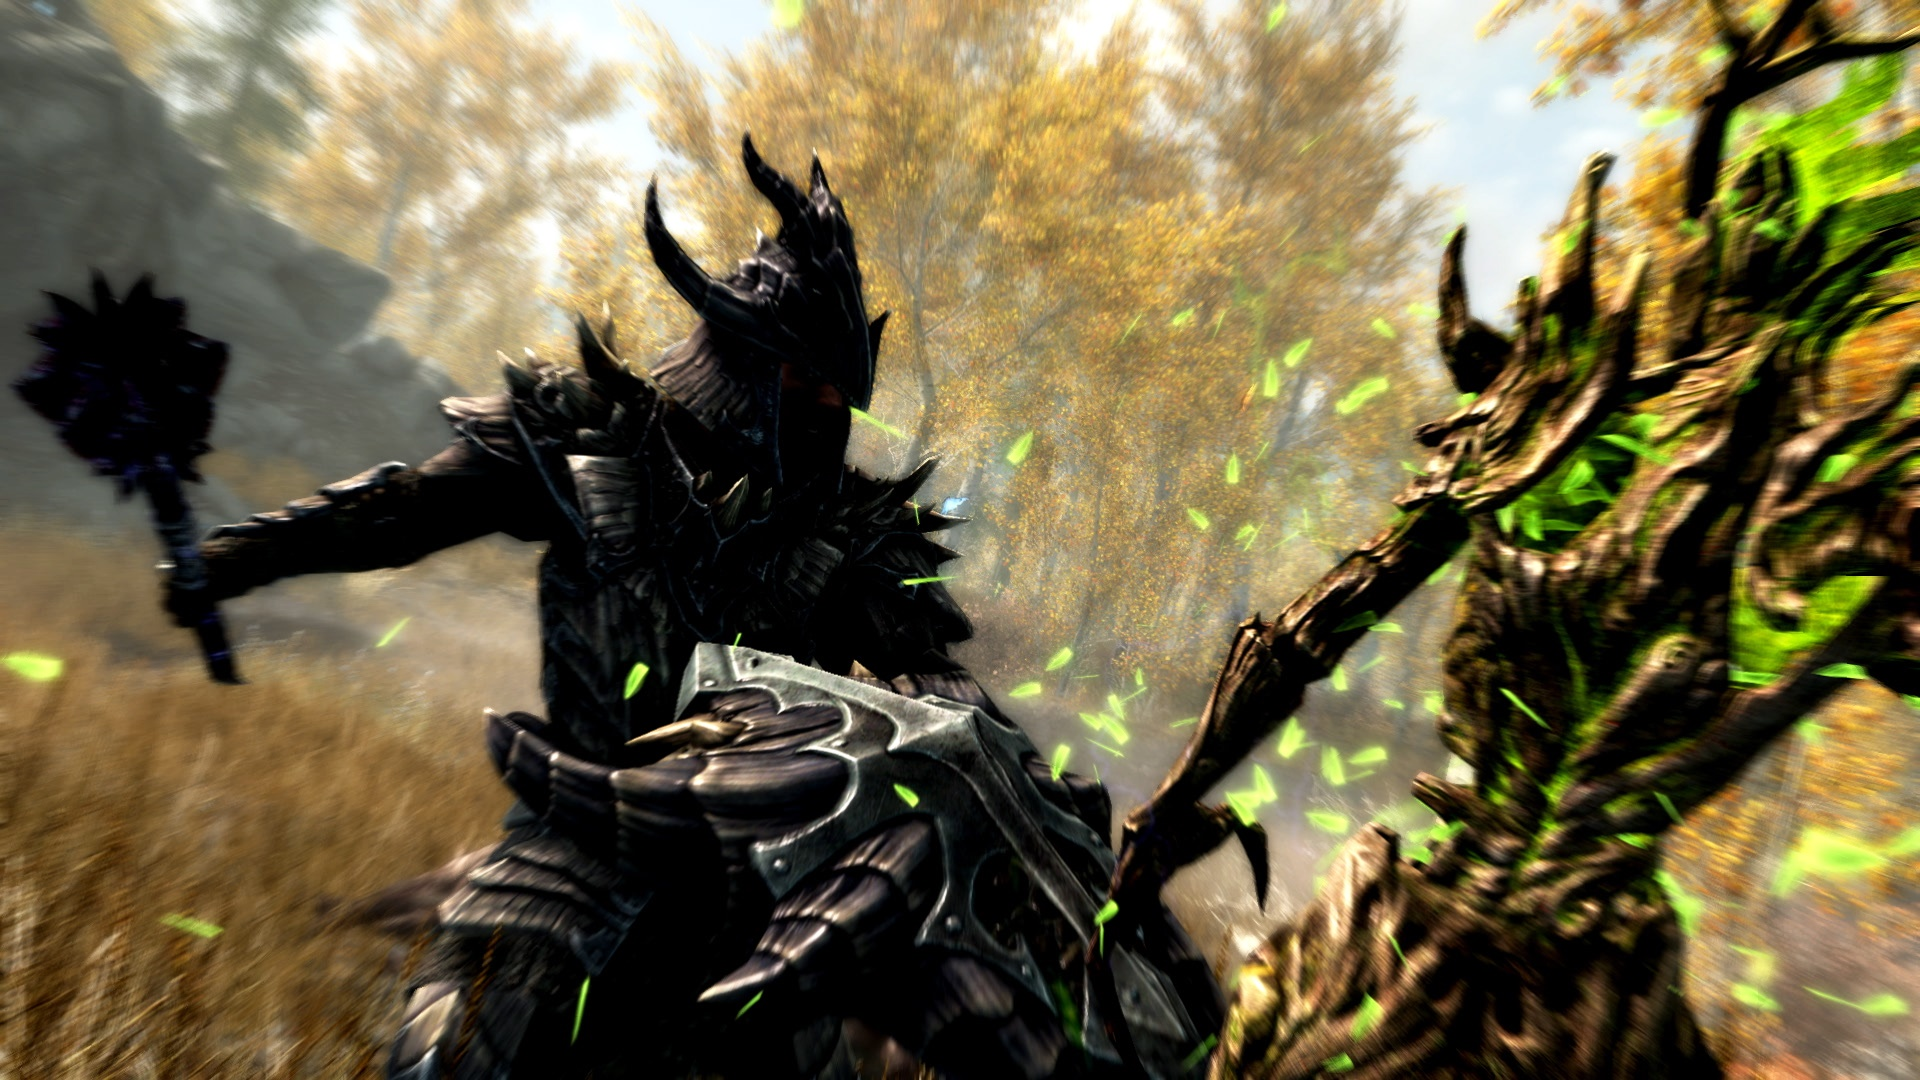 Skyrimspecialeditionspriggan 1465779788